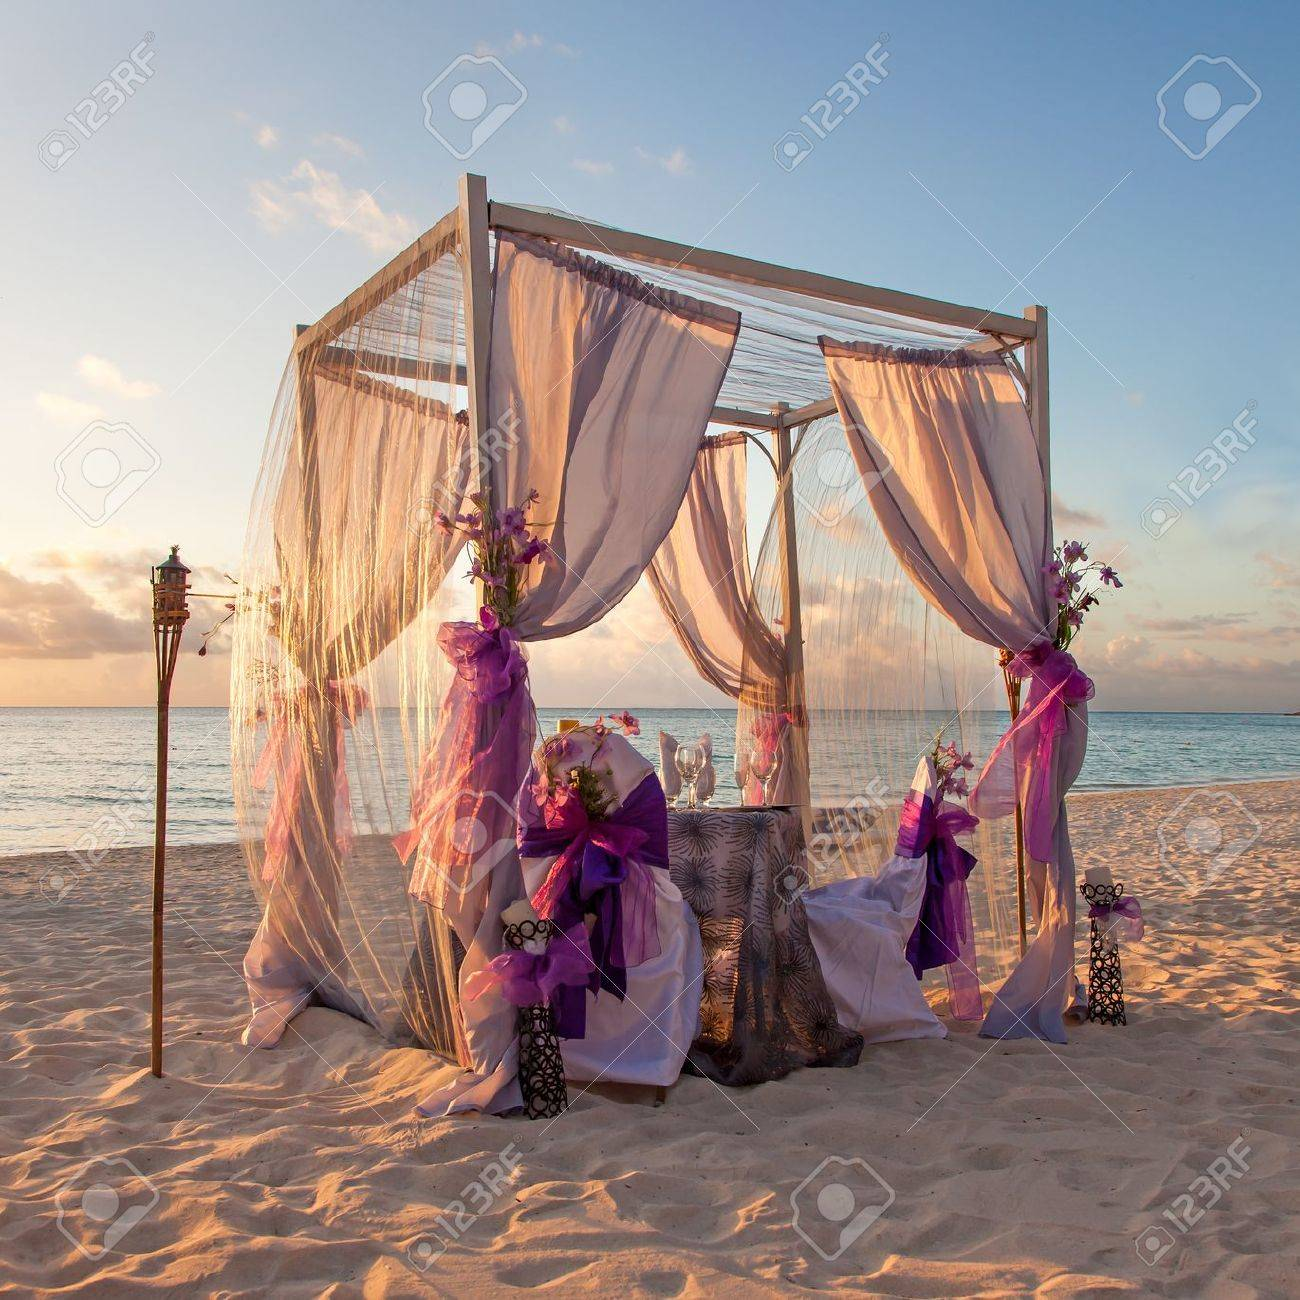 Beautiful Decorated Romantic Wedding Table on Sandy Tropical Caribbean Beach at Sunset Stock Photo - 14641511